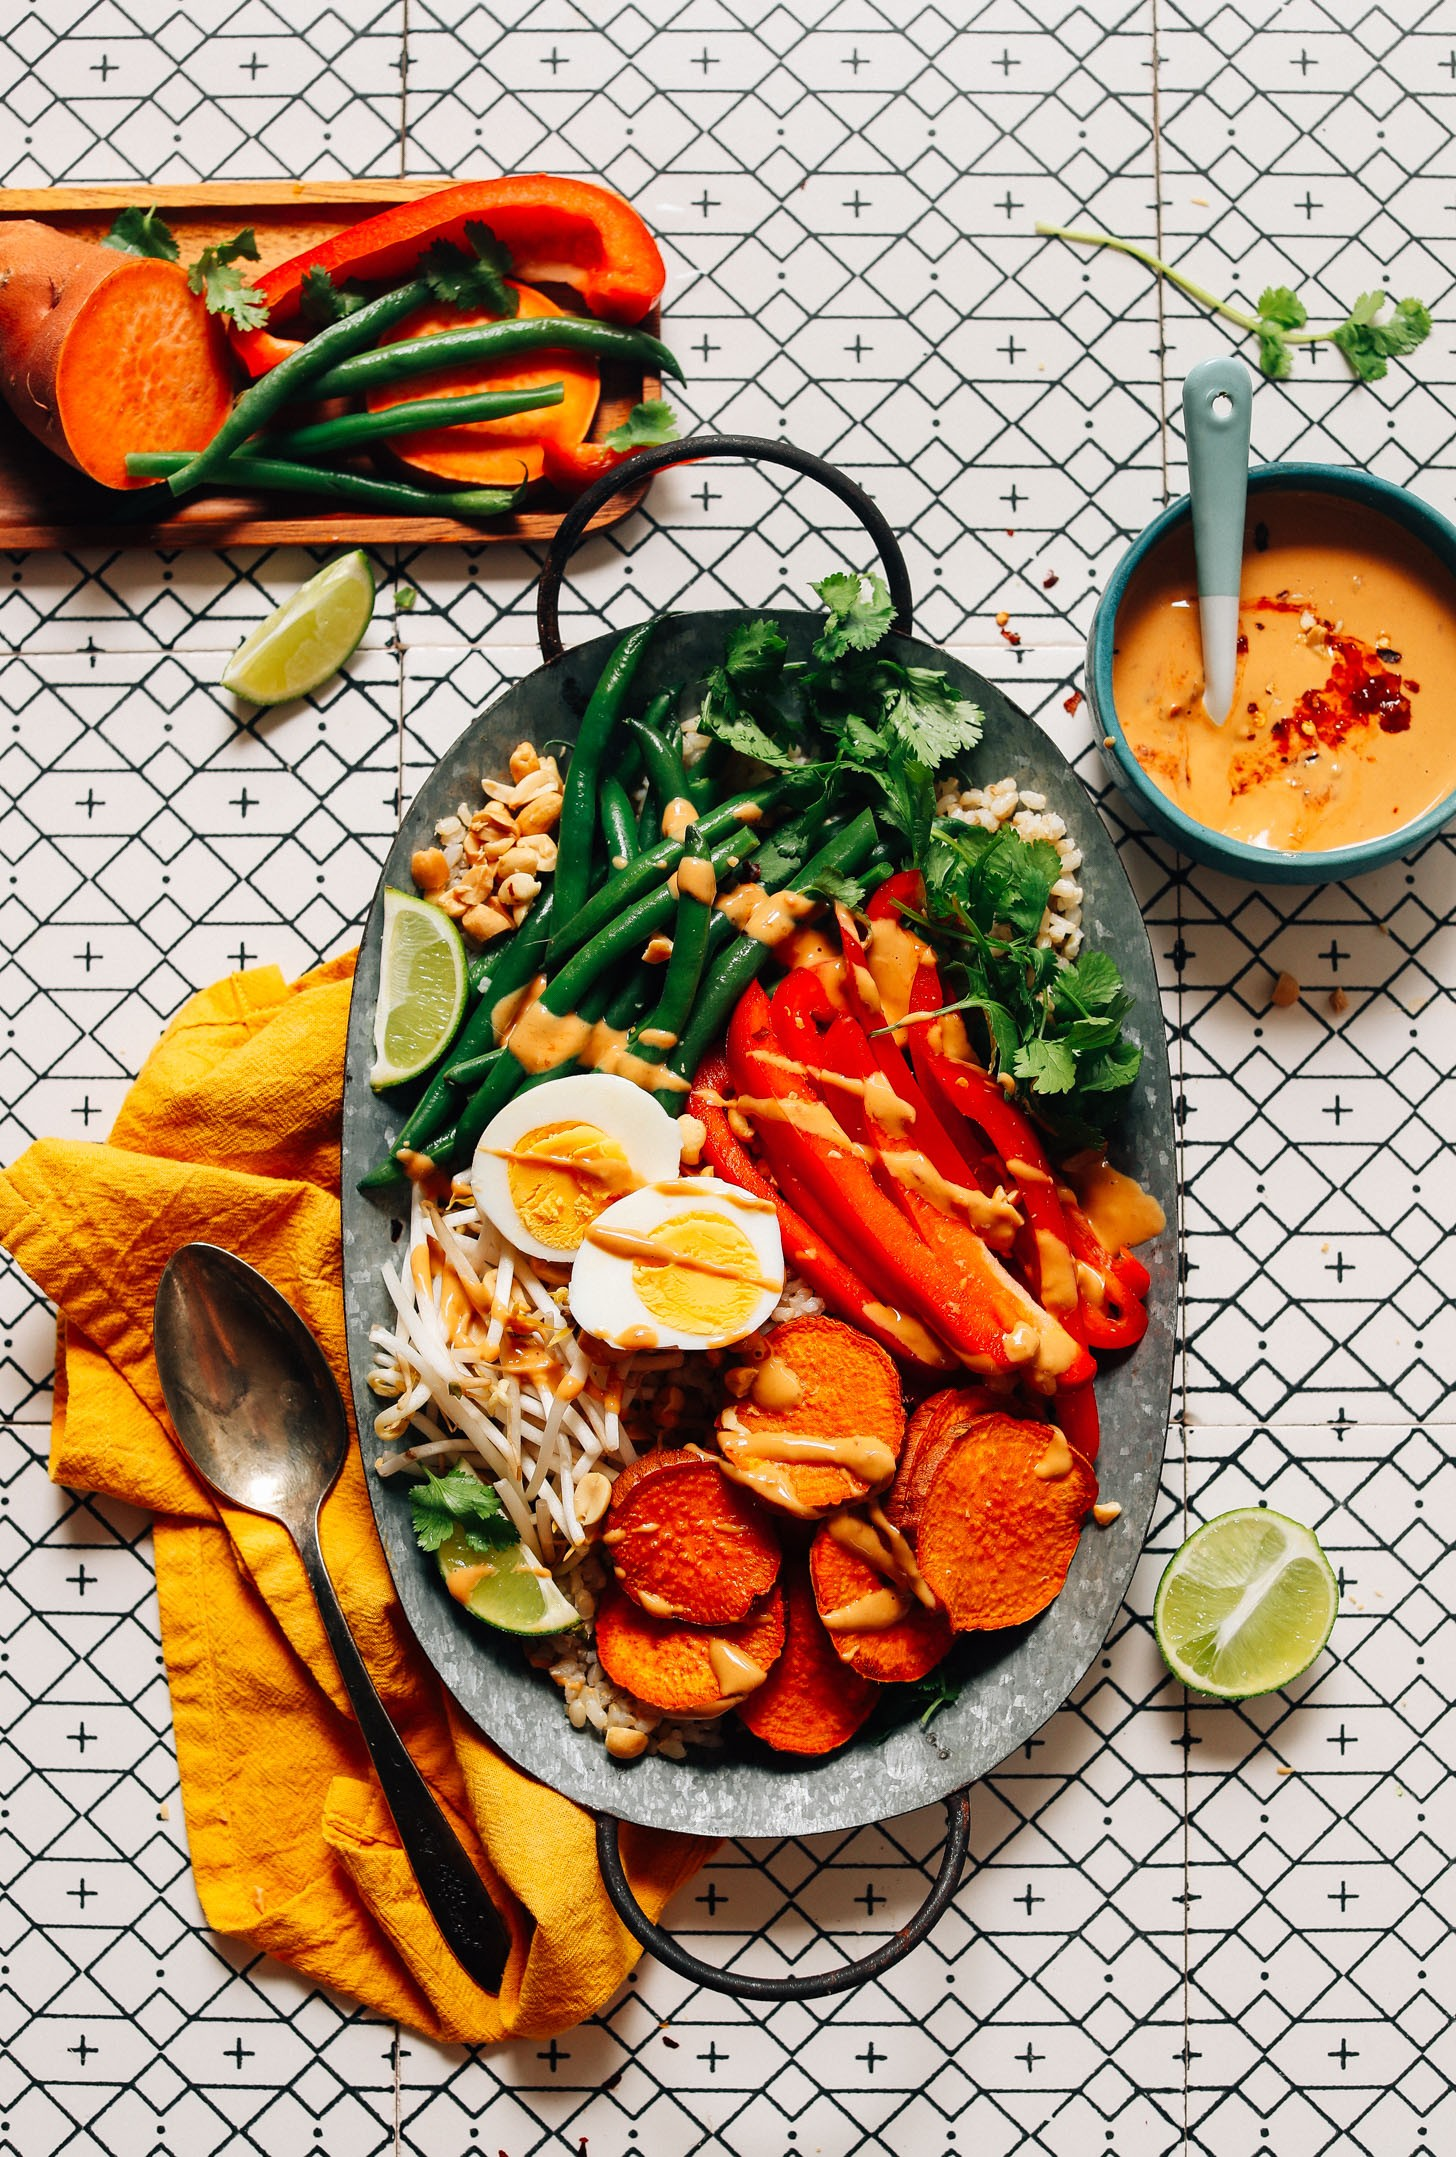 FRESH and Delicious Gado Gado with Roasted and Fresh Veggies and Spicy Peanut Sauce Simple ingre nts ready in 30 minutes dairyfree dinner lunch gadogado glutenfree minimalistbaker recipe 7